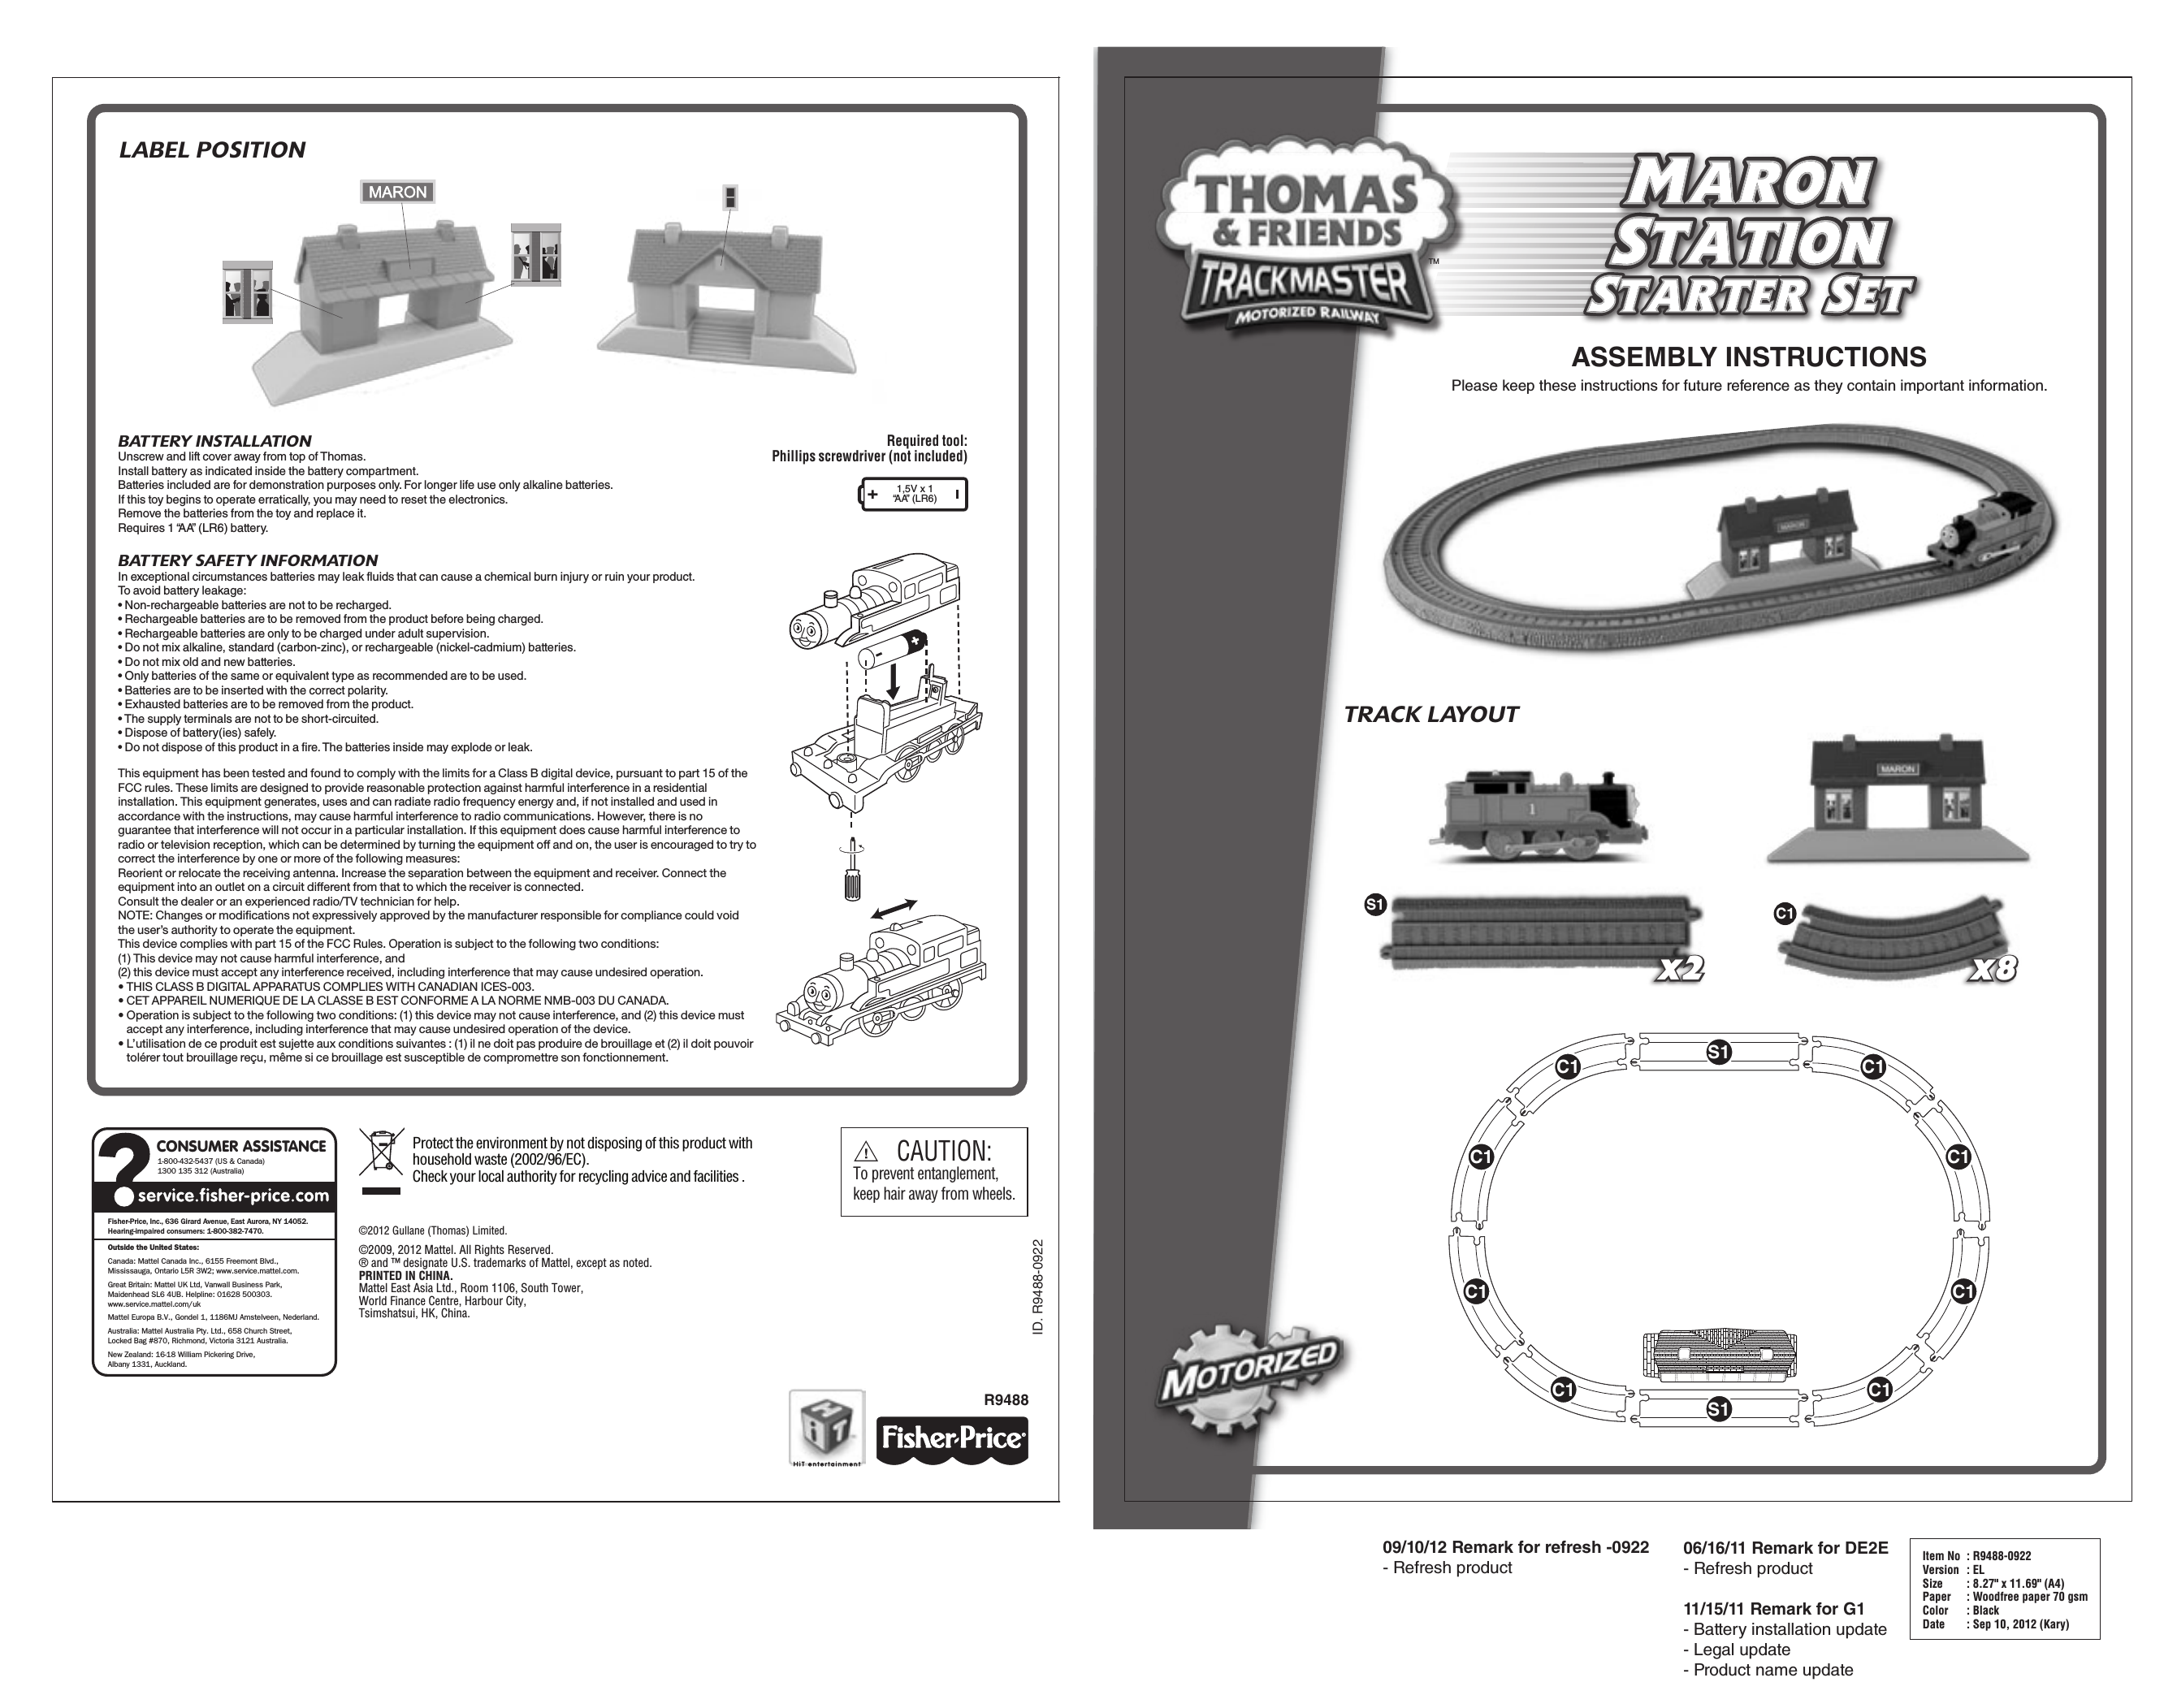 fisher price r9488 instruction sheet free pdf download 4 pages rh manualagent com fisher price instruction manuals online fisher price instruction manual cbv76-9993